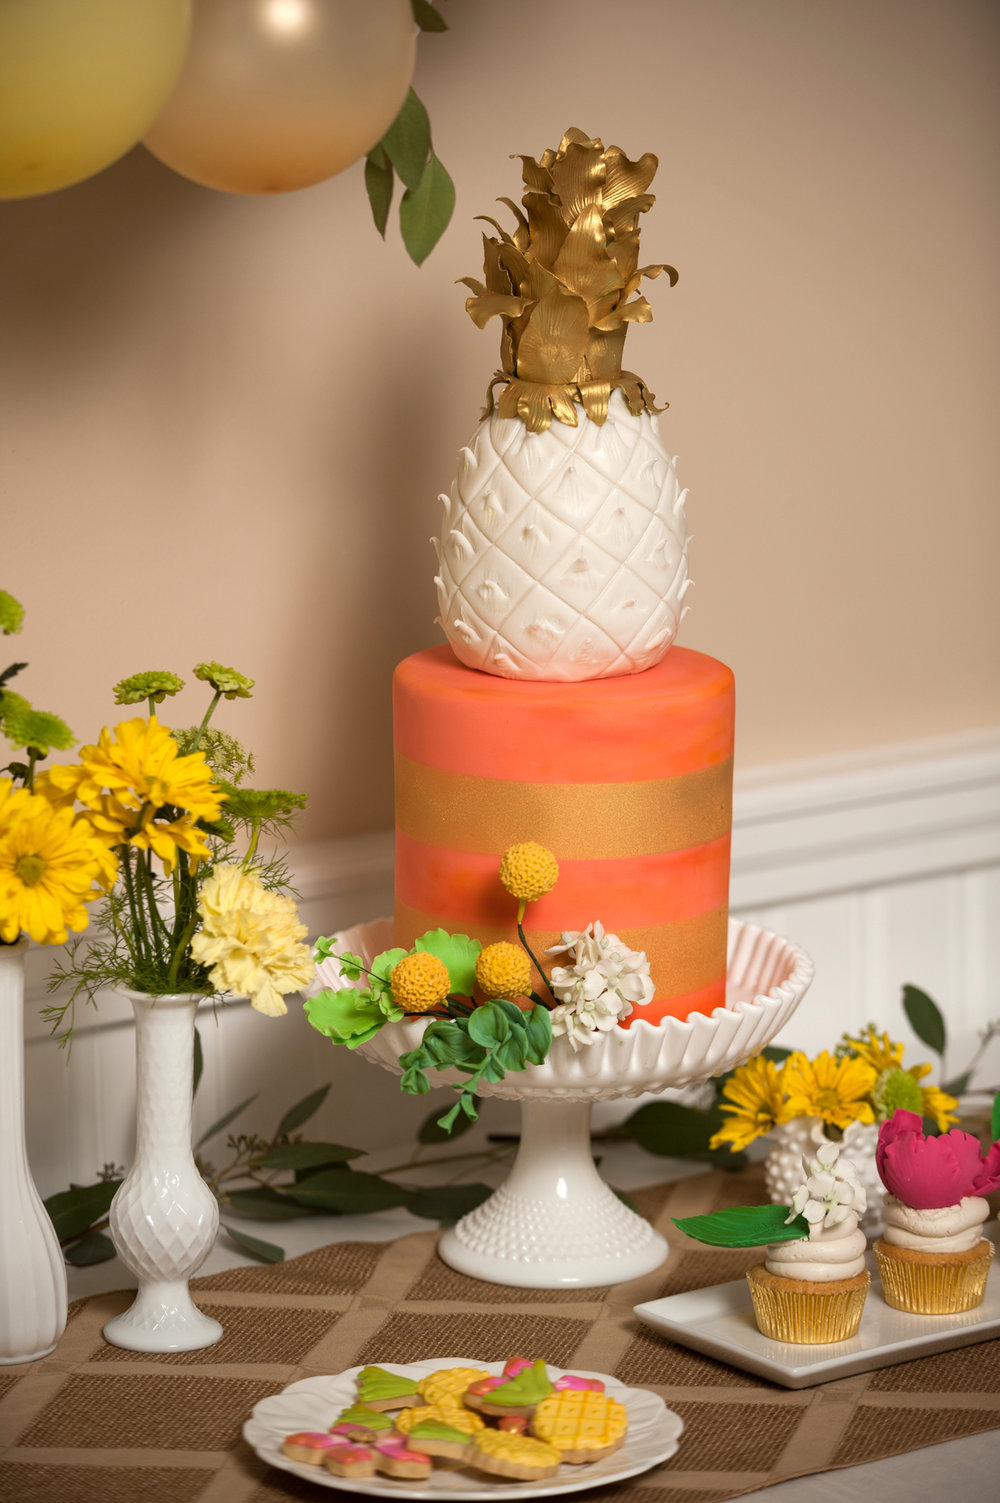 pineapple-bridal-shower-cake-topper-091316.jpg